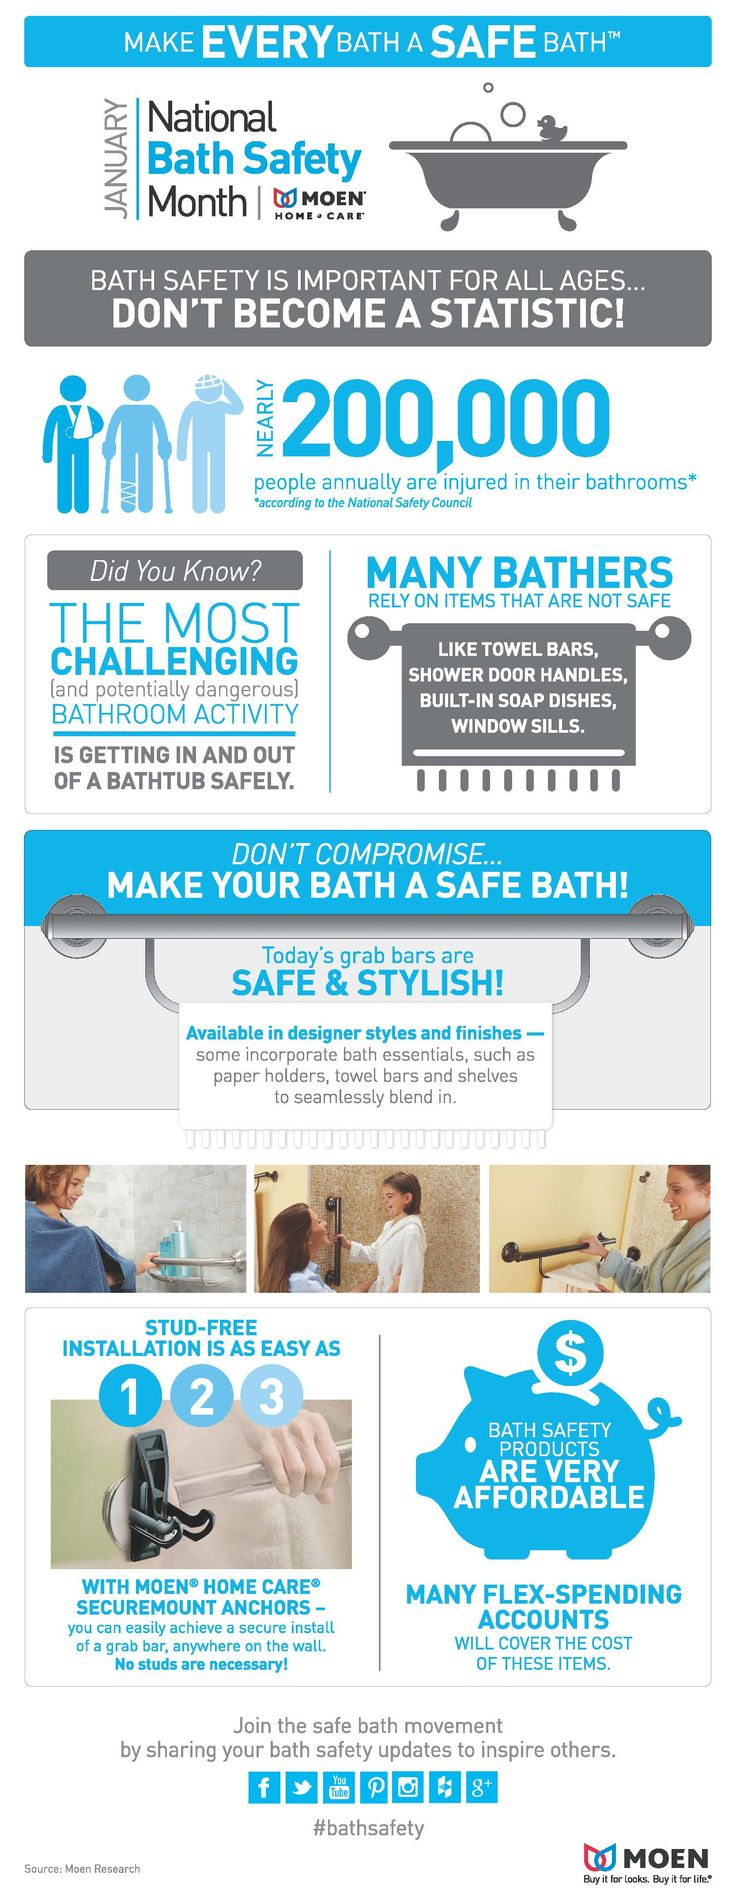 Did you know January is National Bath Safety Month? Check